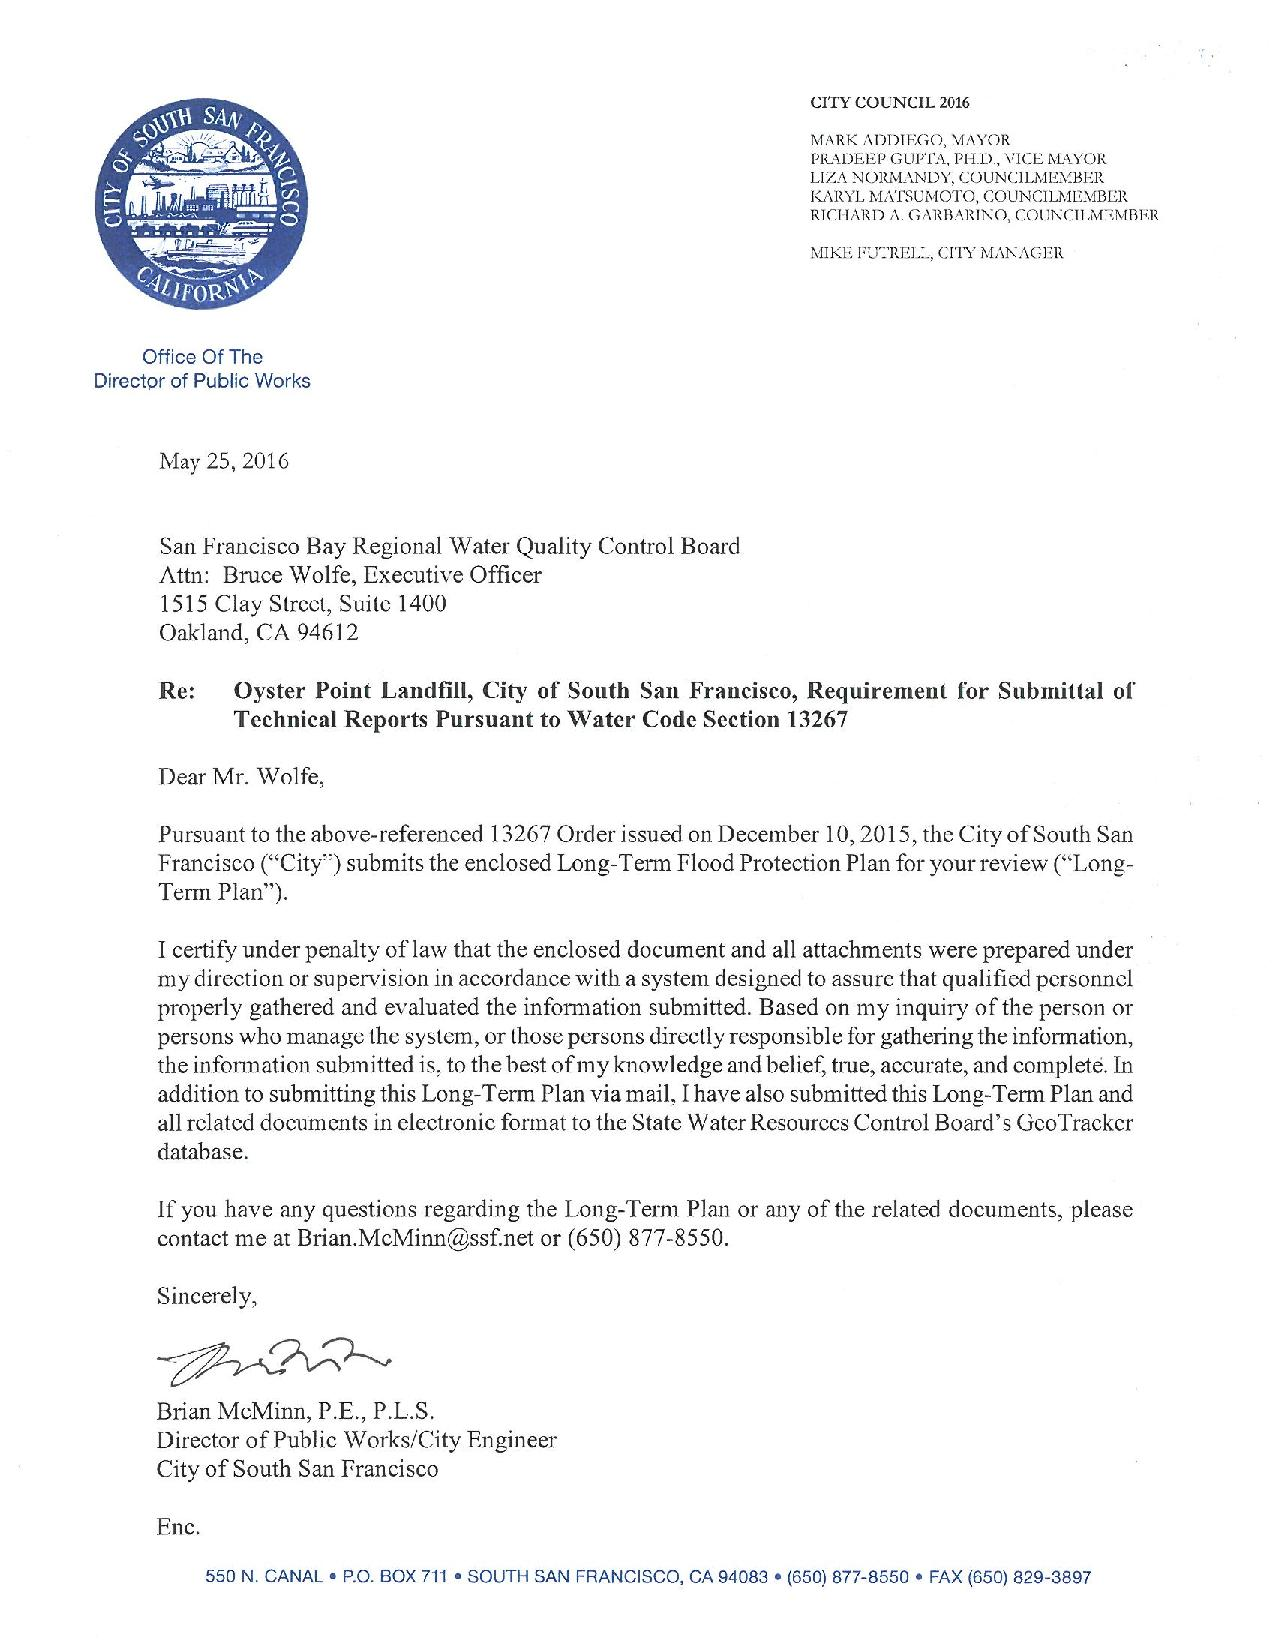 City of SSF Oyster Pt. Landfill Long-Term Flood Protection Letter & Plan-2-page-001